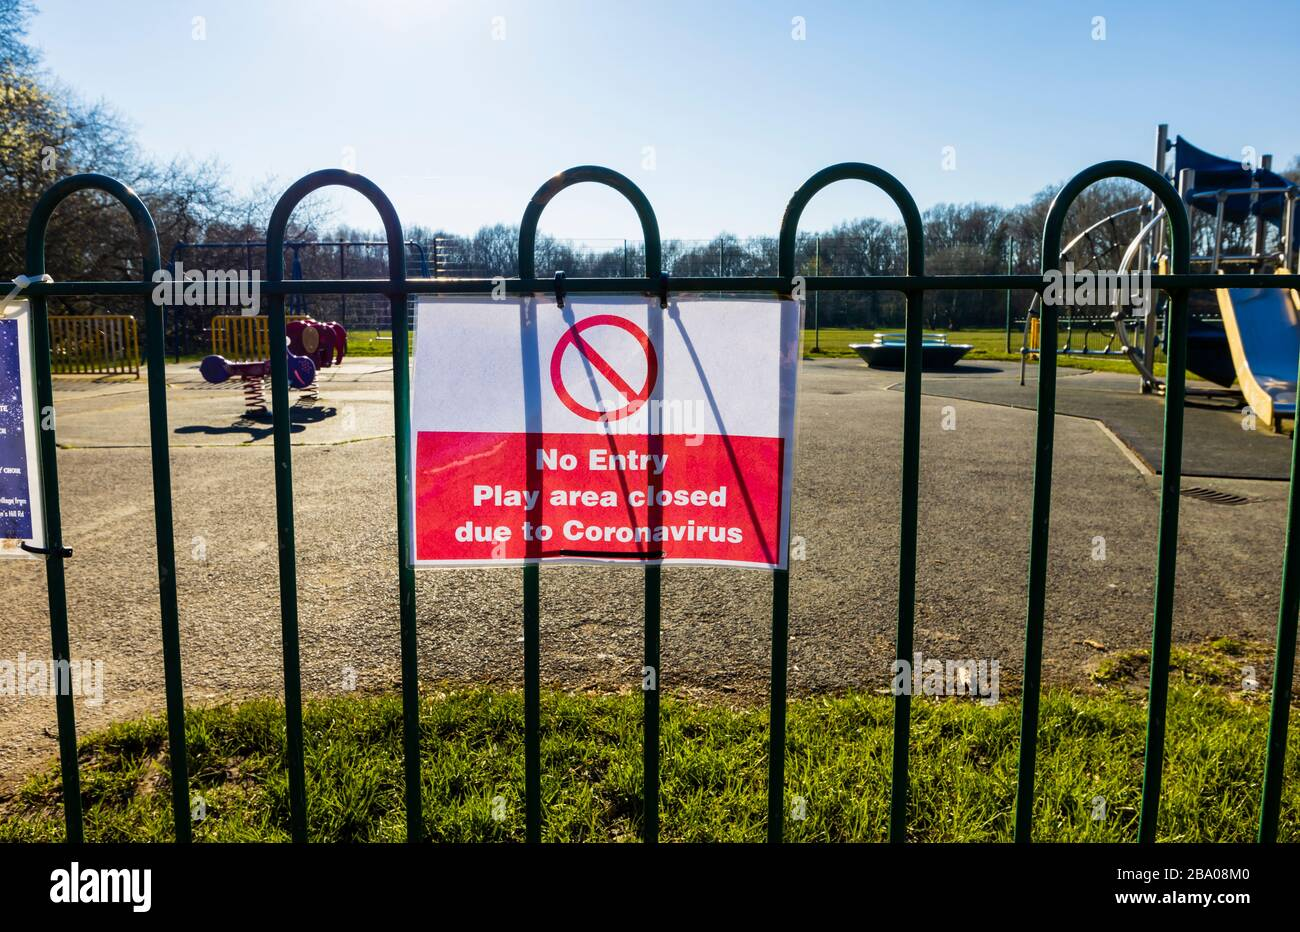 Lockdown: Sign on railings of a playground for children in a park: No Entry; Play area closed due to Coronavirus: St John's Lye, Woking, Surrey Stock Photo